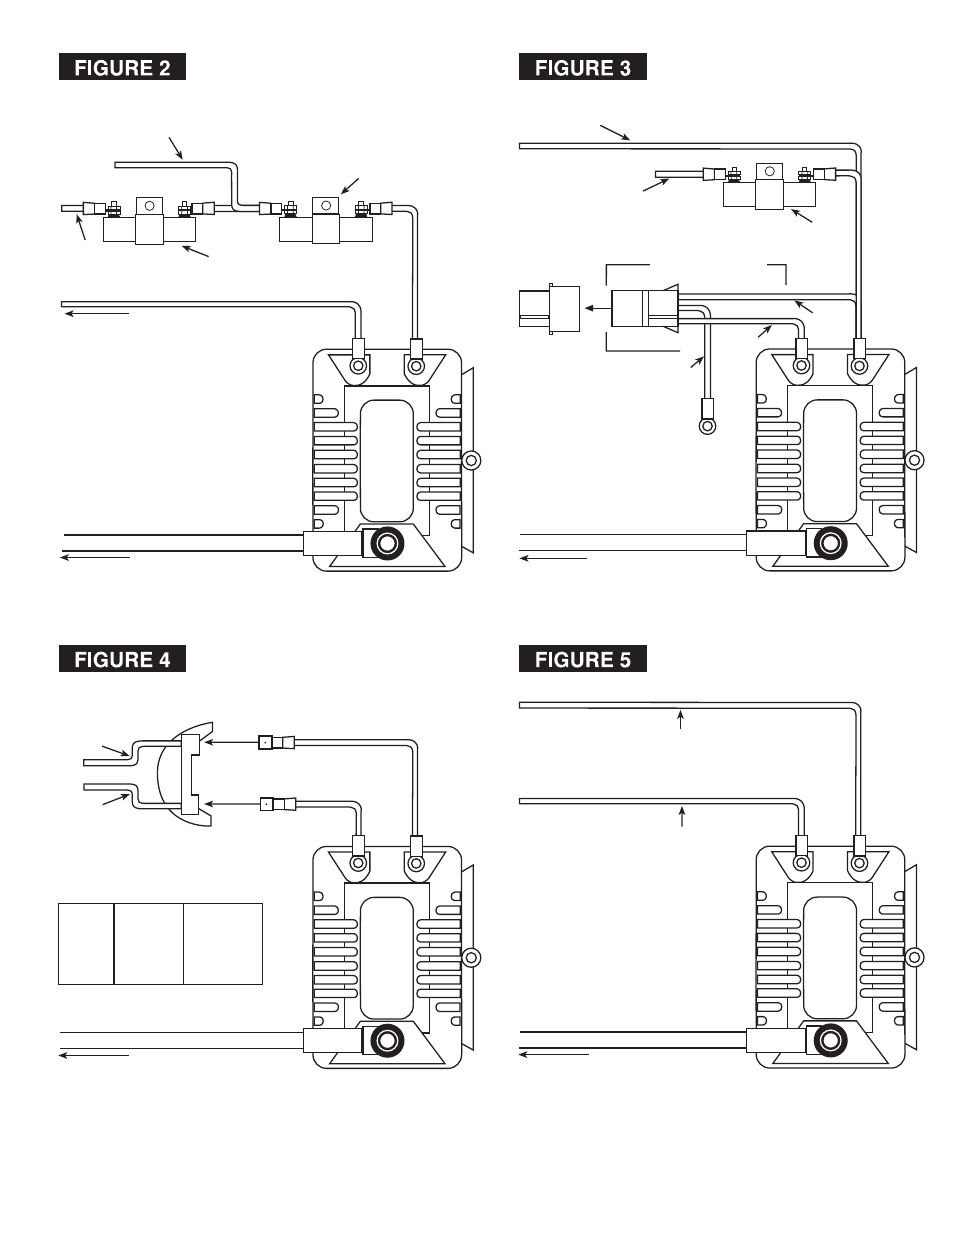 Mallory Voltmaster Wiring Diagram Library Dual Point Ignition Circuit Promaster Coils And Mark Ii 28675 28720 User Manual